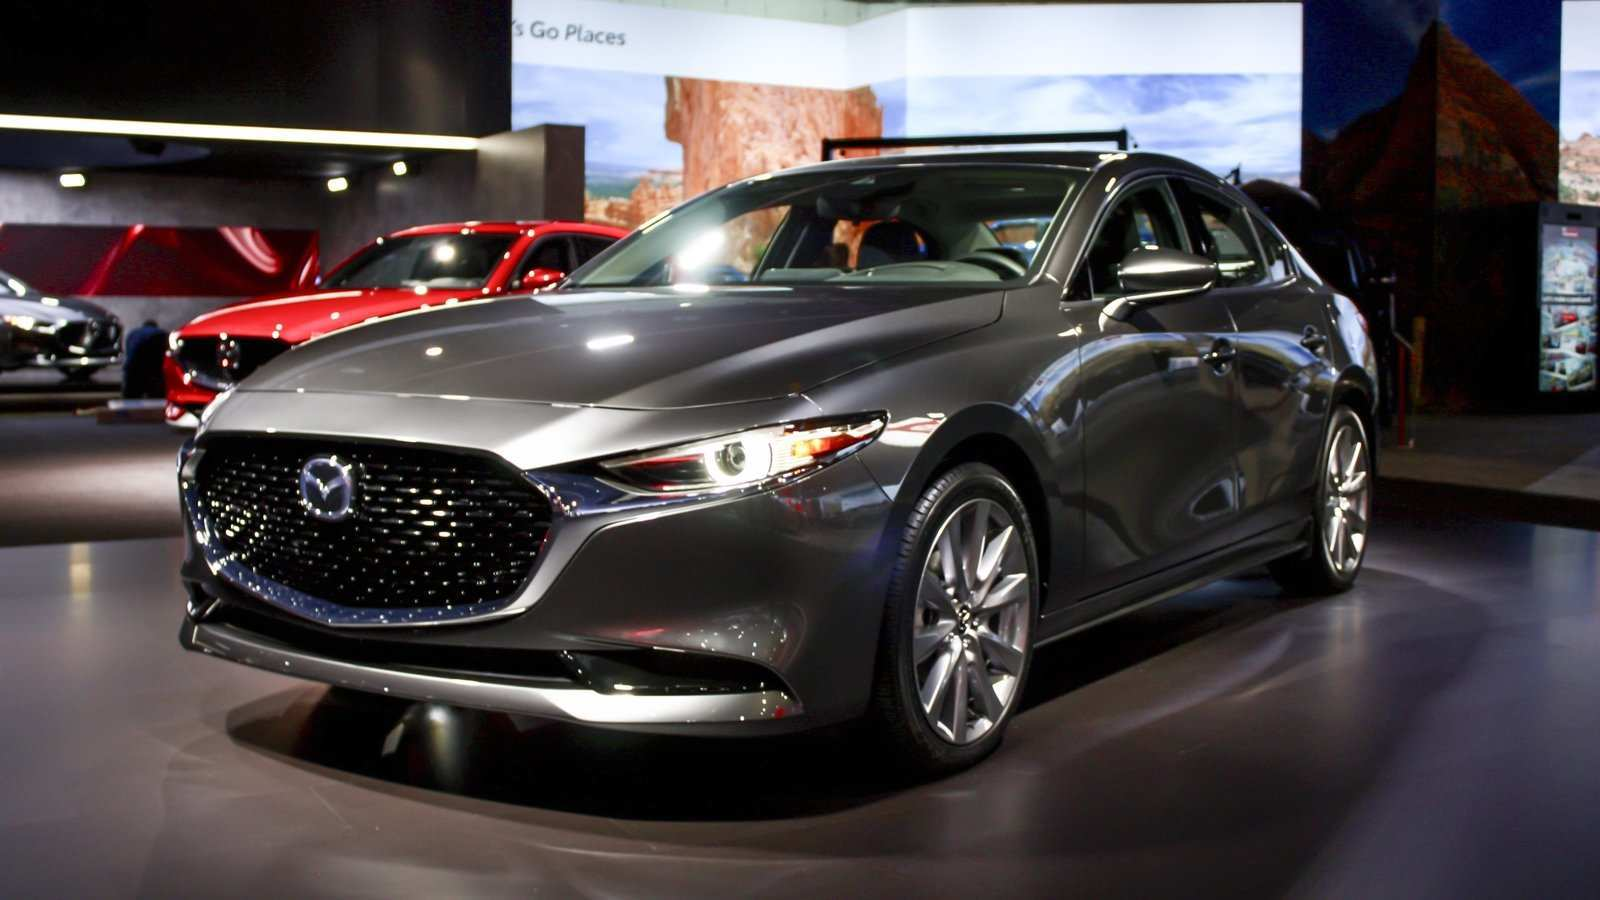 60 Best Review Best Mazda 3 2019 Price Release Date Price And Review Model by Best Mazda 3 2019 Price Release Date Price And Review